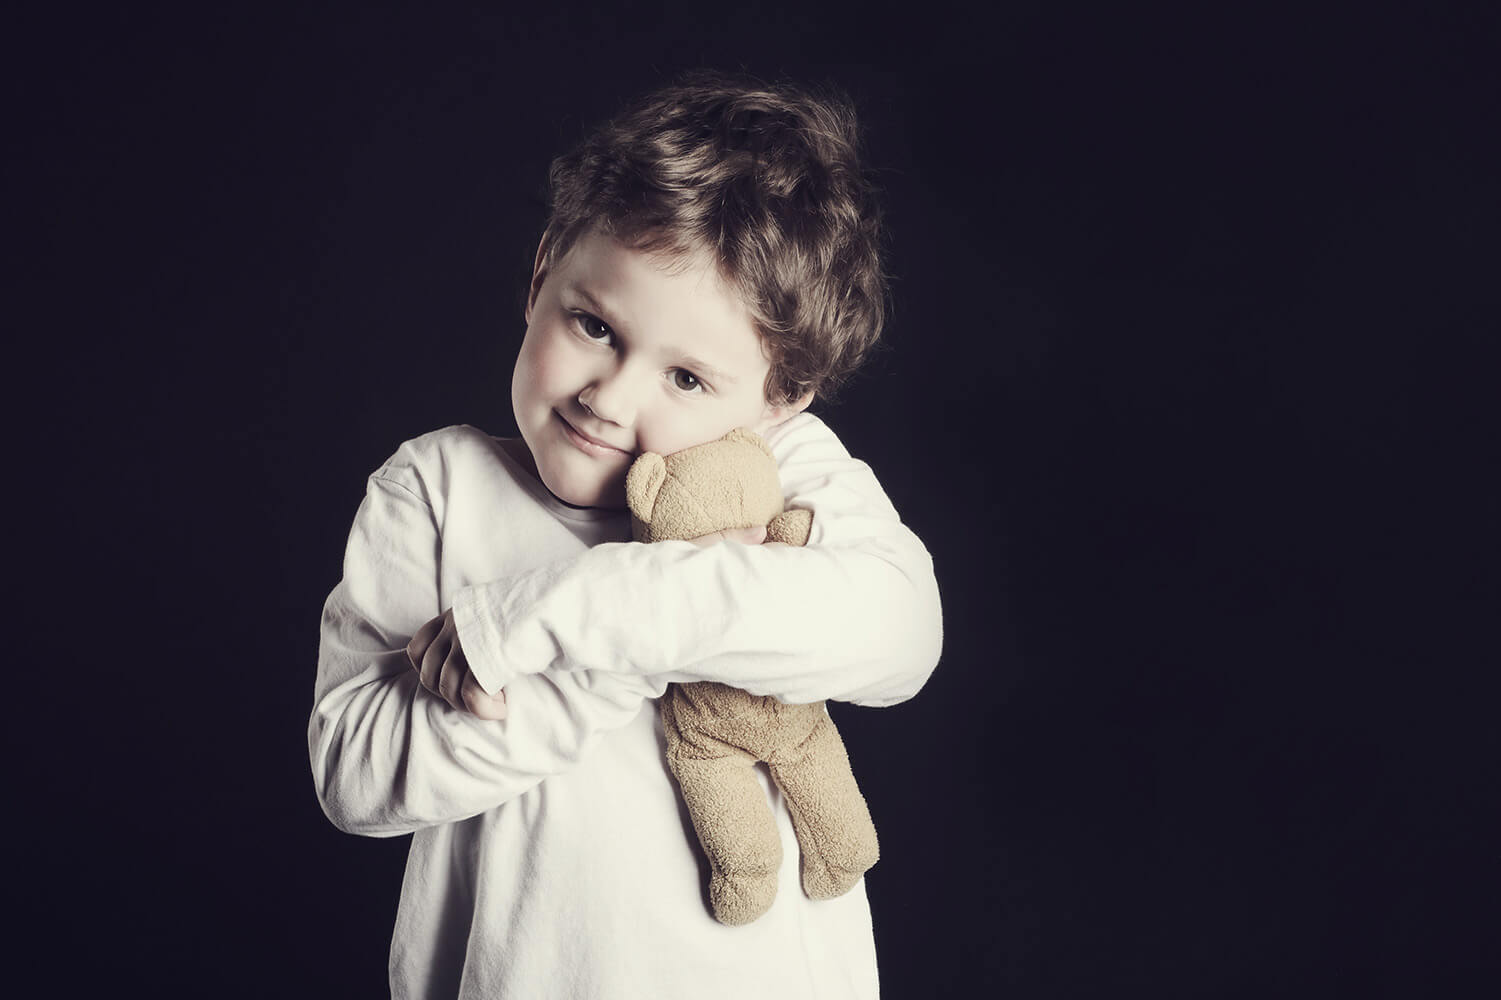 Family photo of a boy with a teddy bear on a dark background